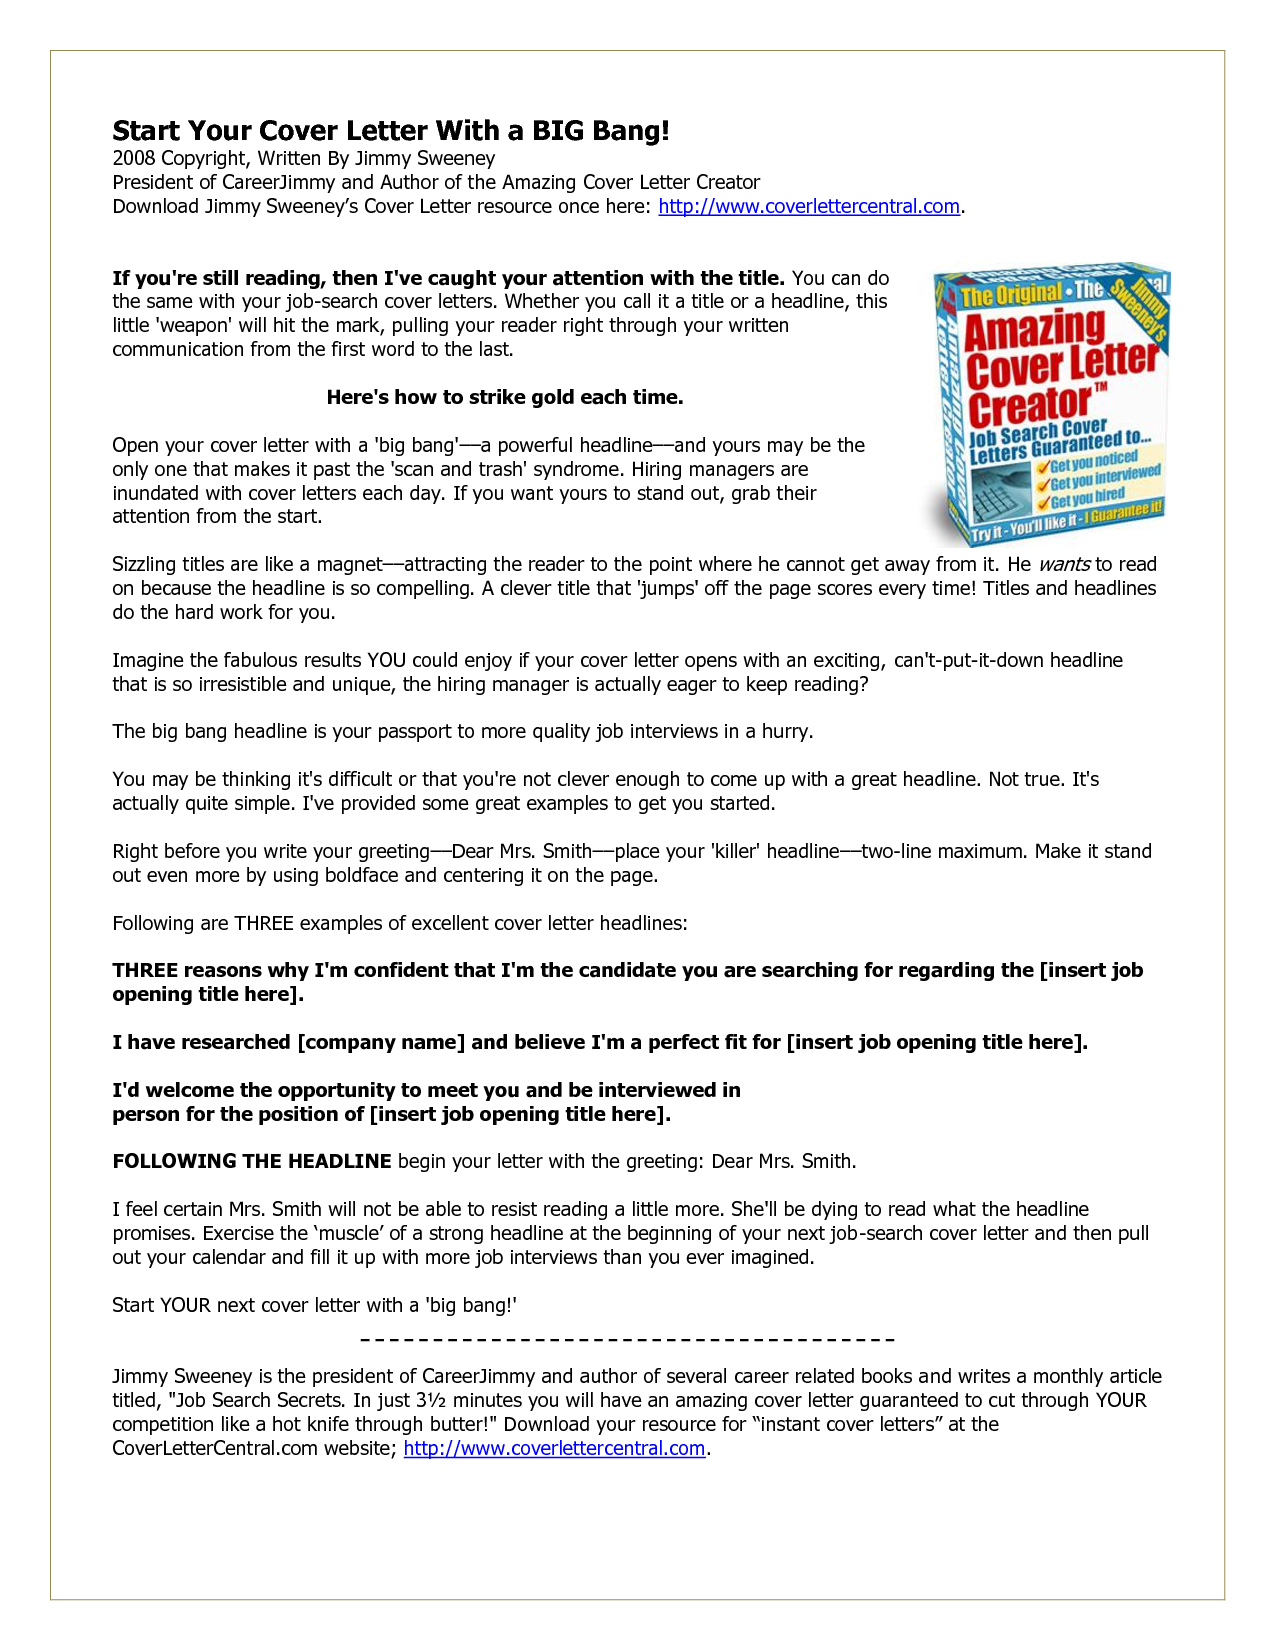 do you know how to get amazing cover letters pouted online magazine